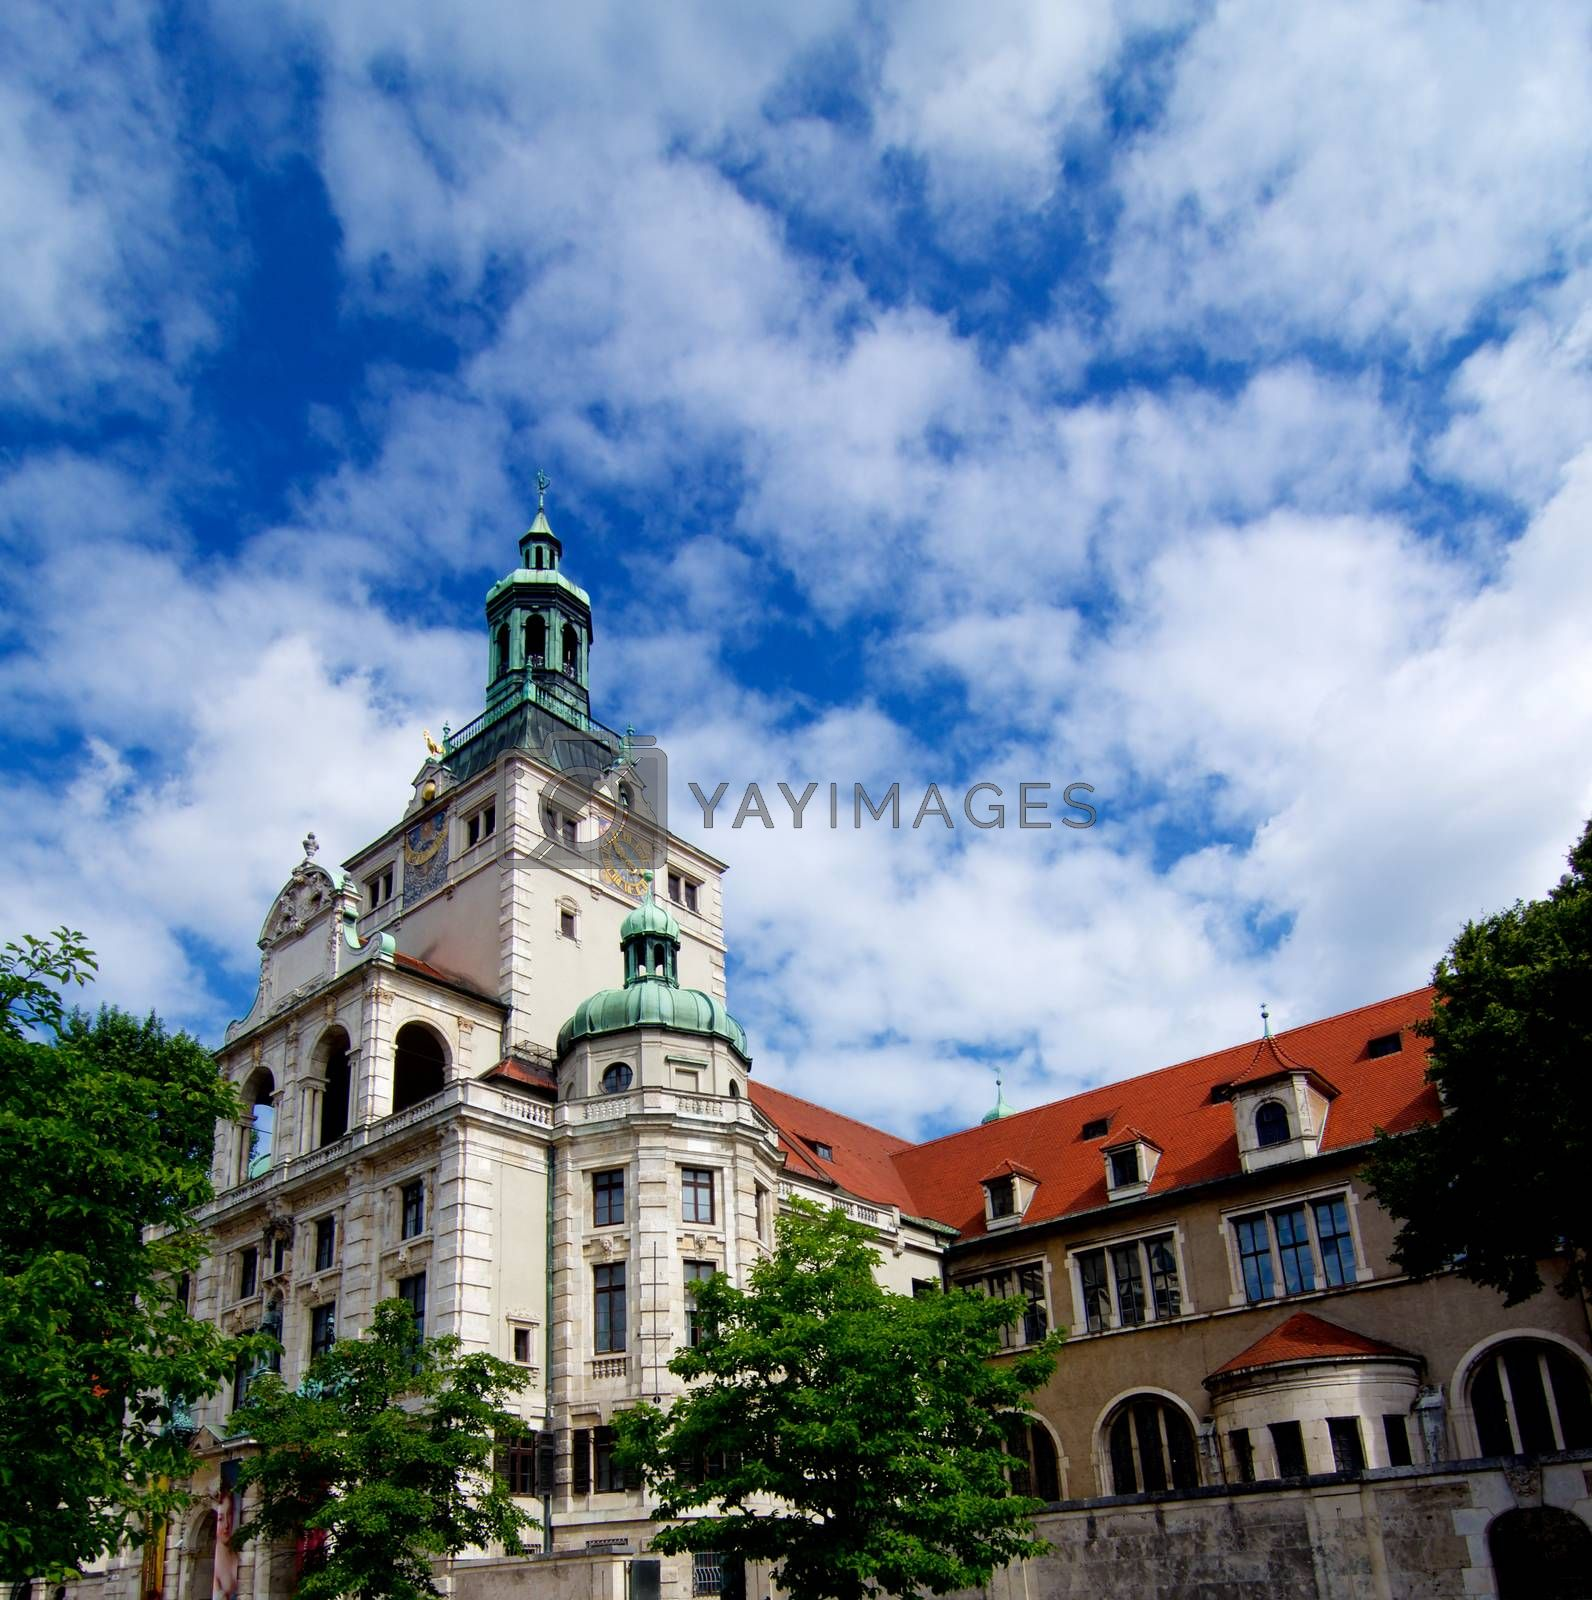 Building of Bavarian National Museum Bottom up View against Cloudy Blue Sky Outdoors. Munich, Germany